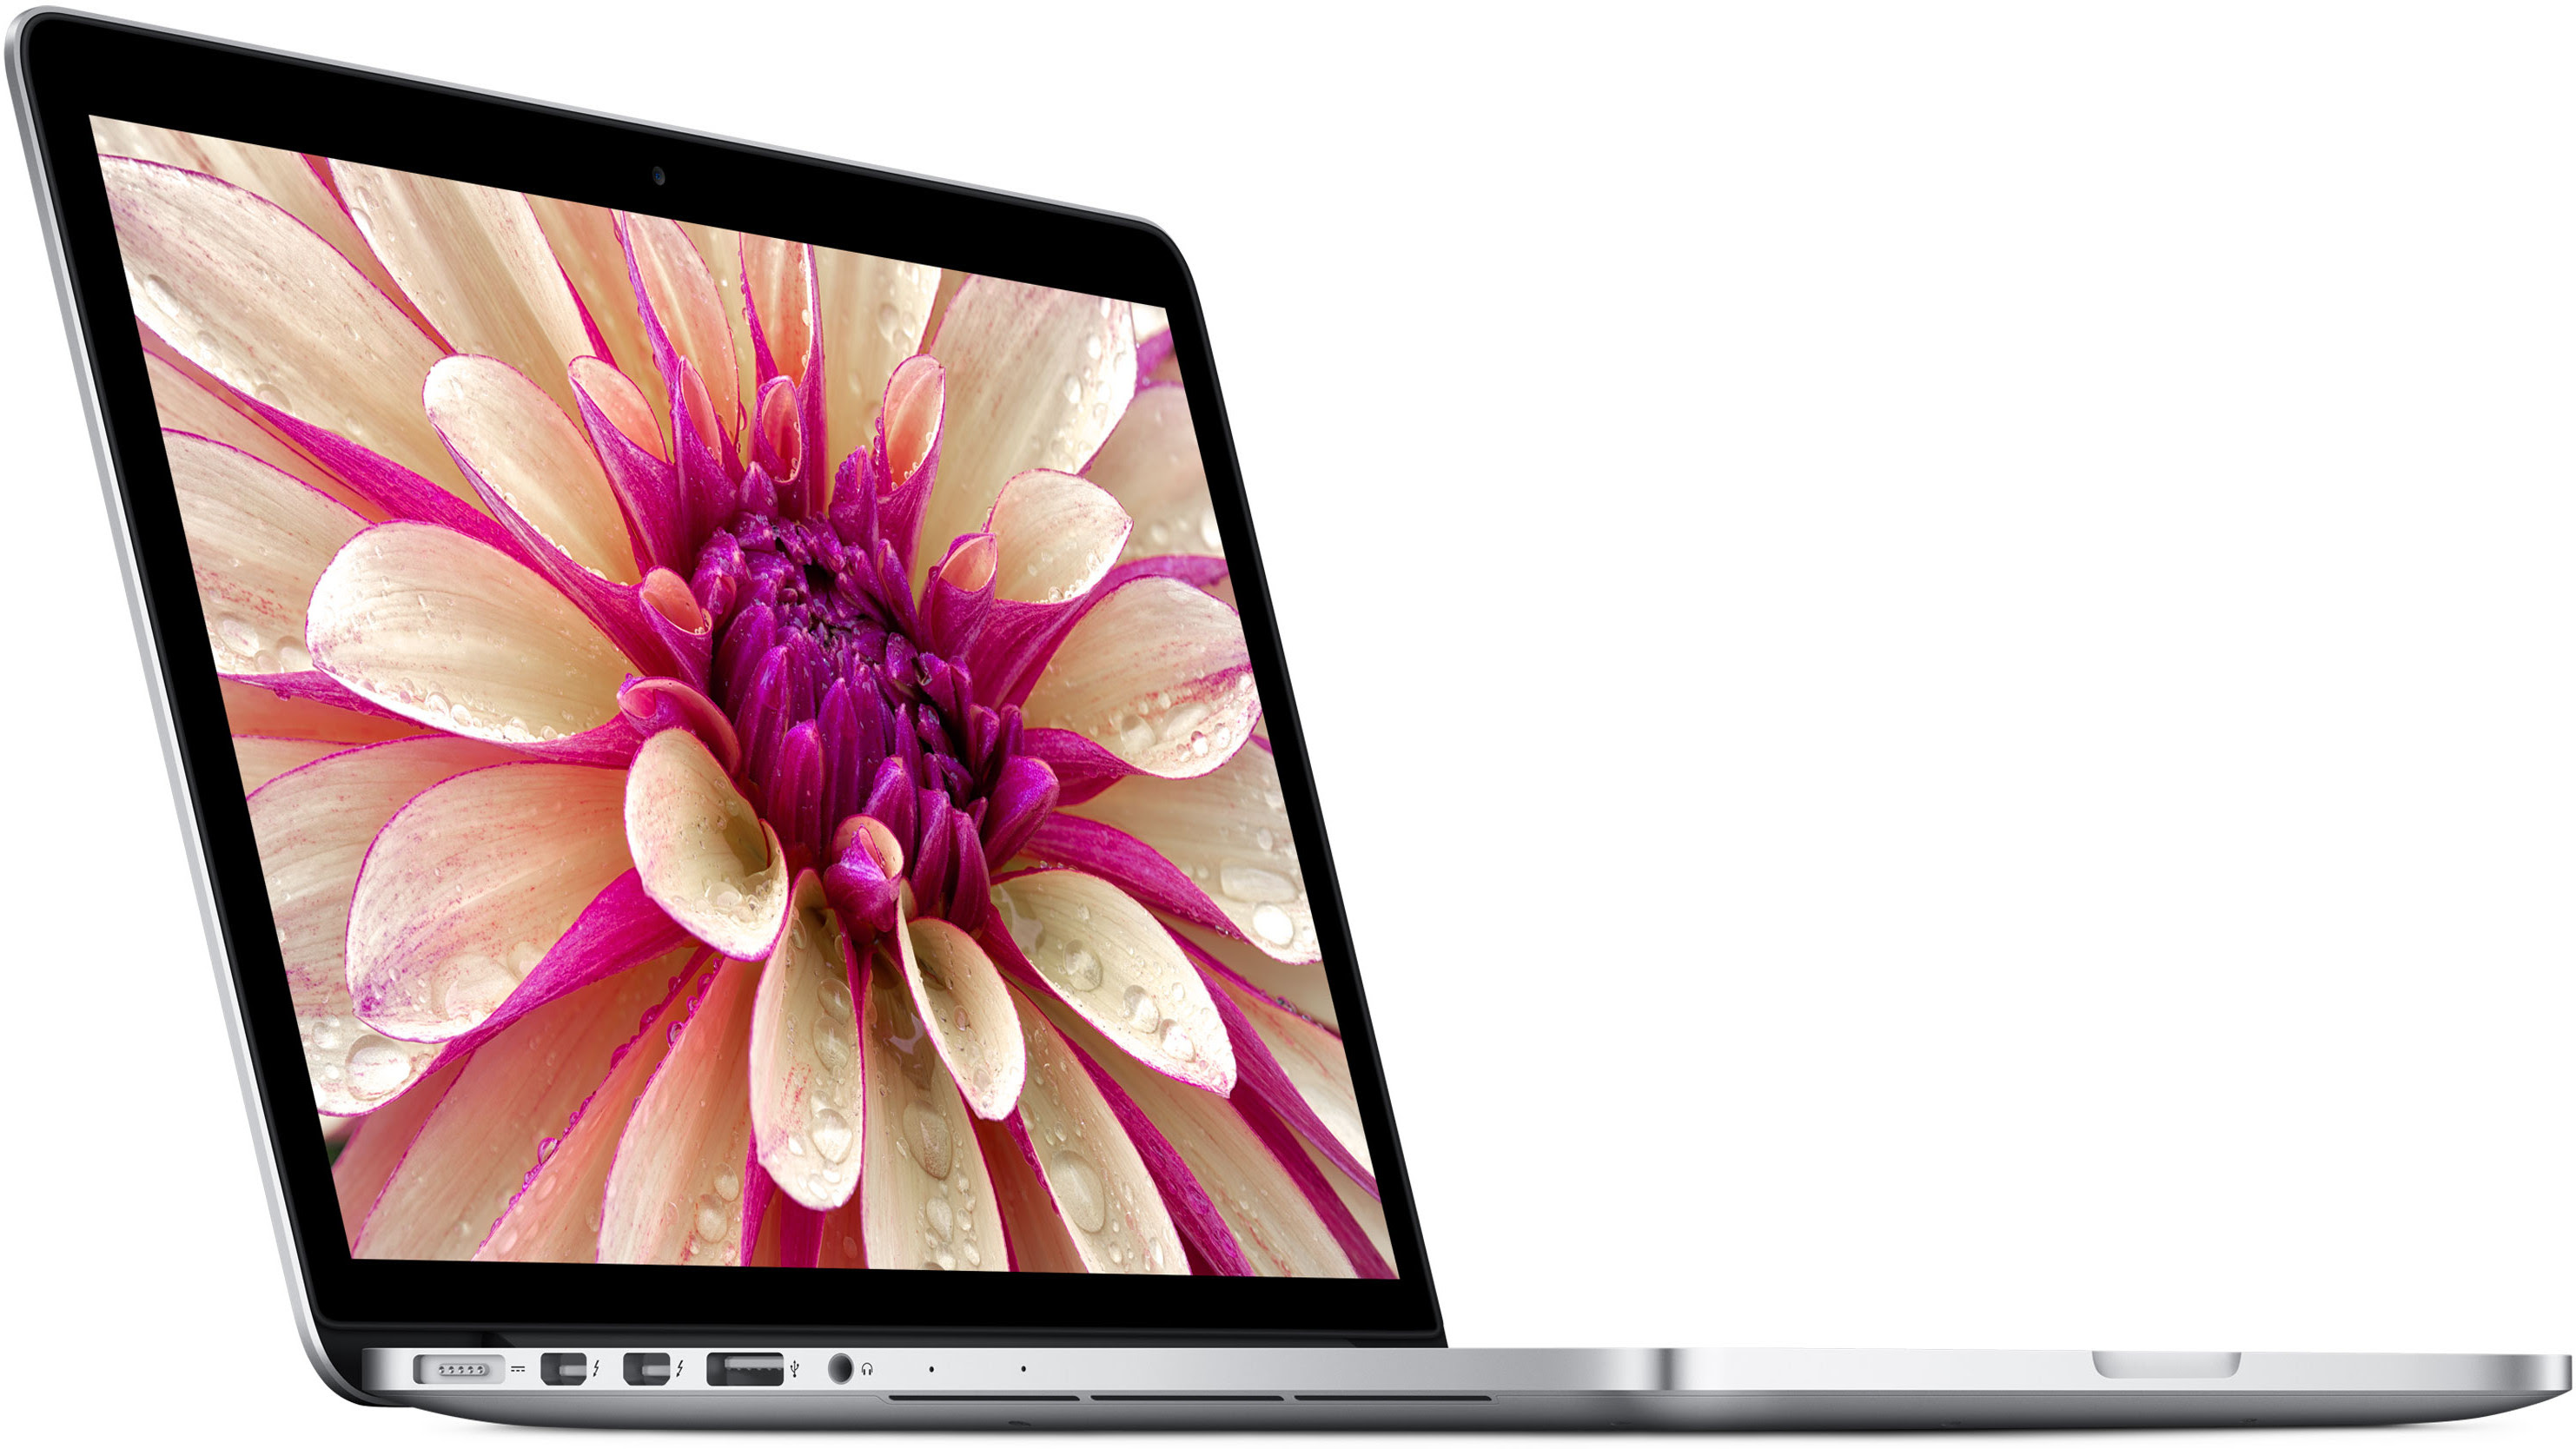 Apple launches refreshed 15-inch MacBook Pro, new iMac with Retina 5K Display